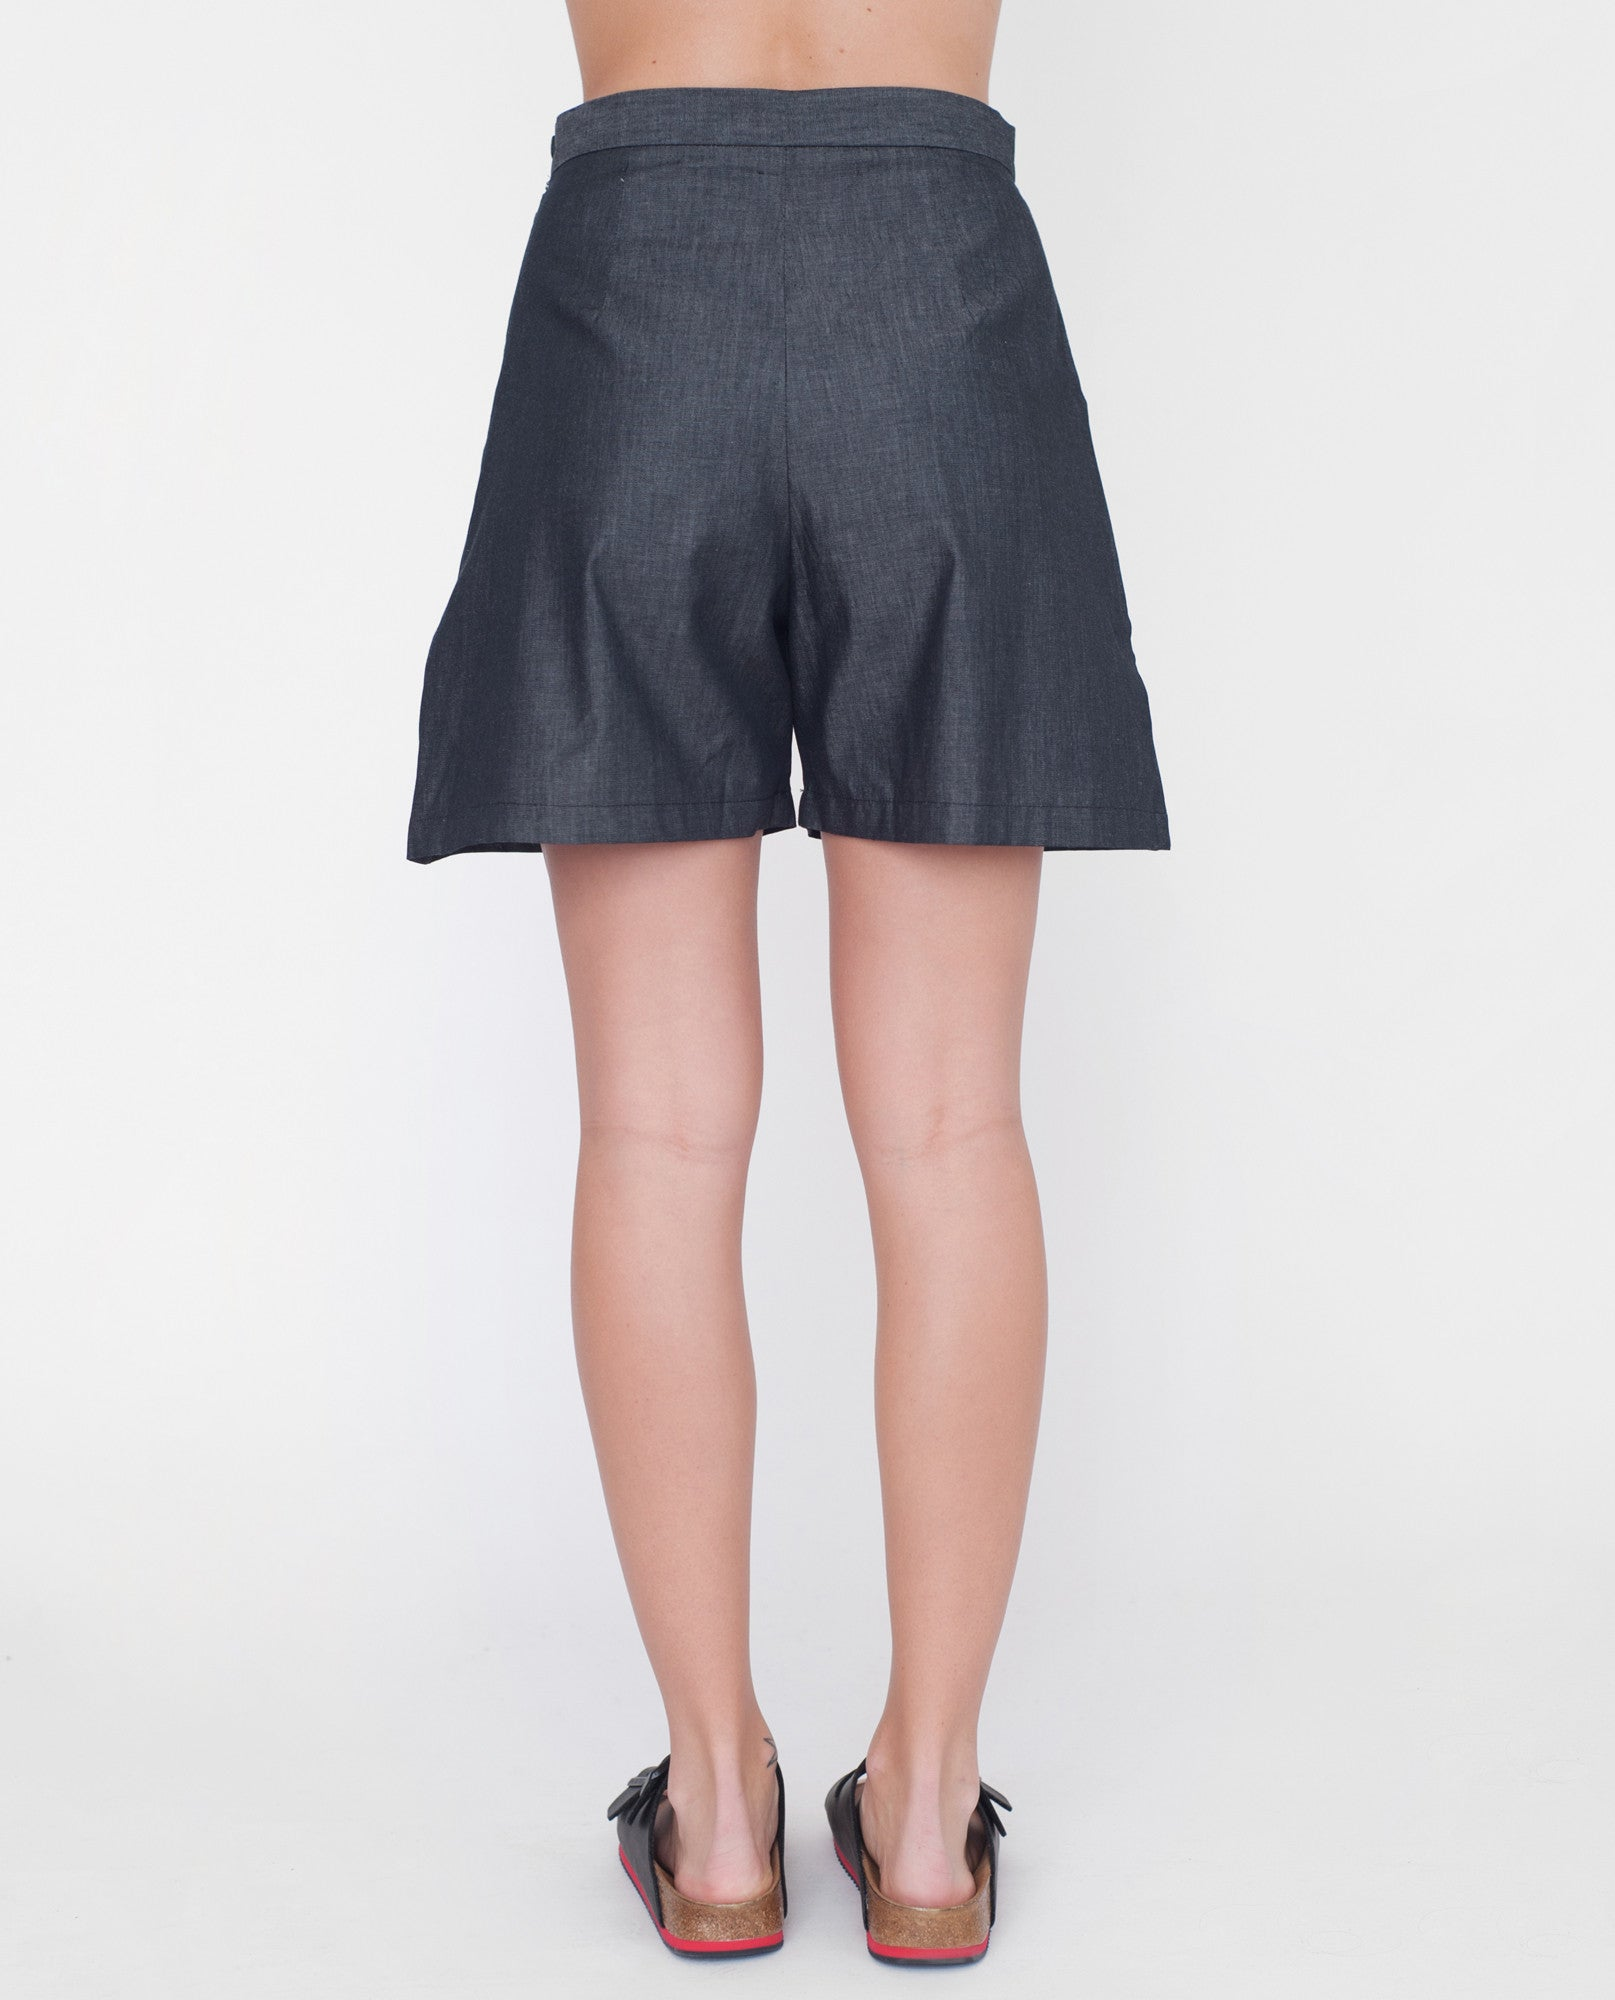 JOLIE Cotton Chambray Shorts In Black